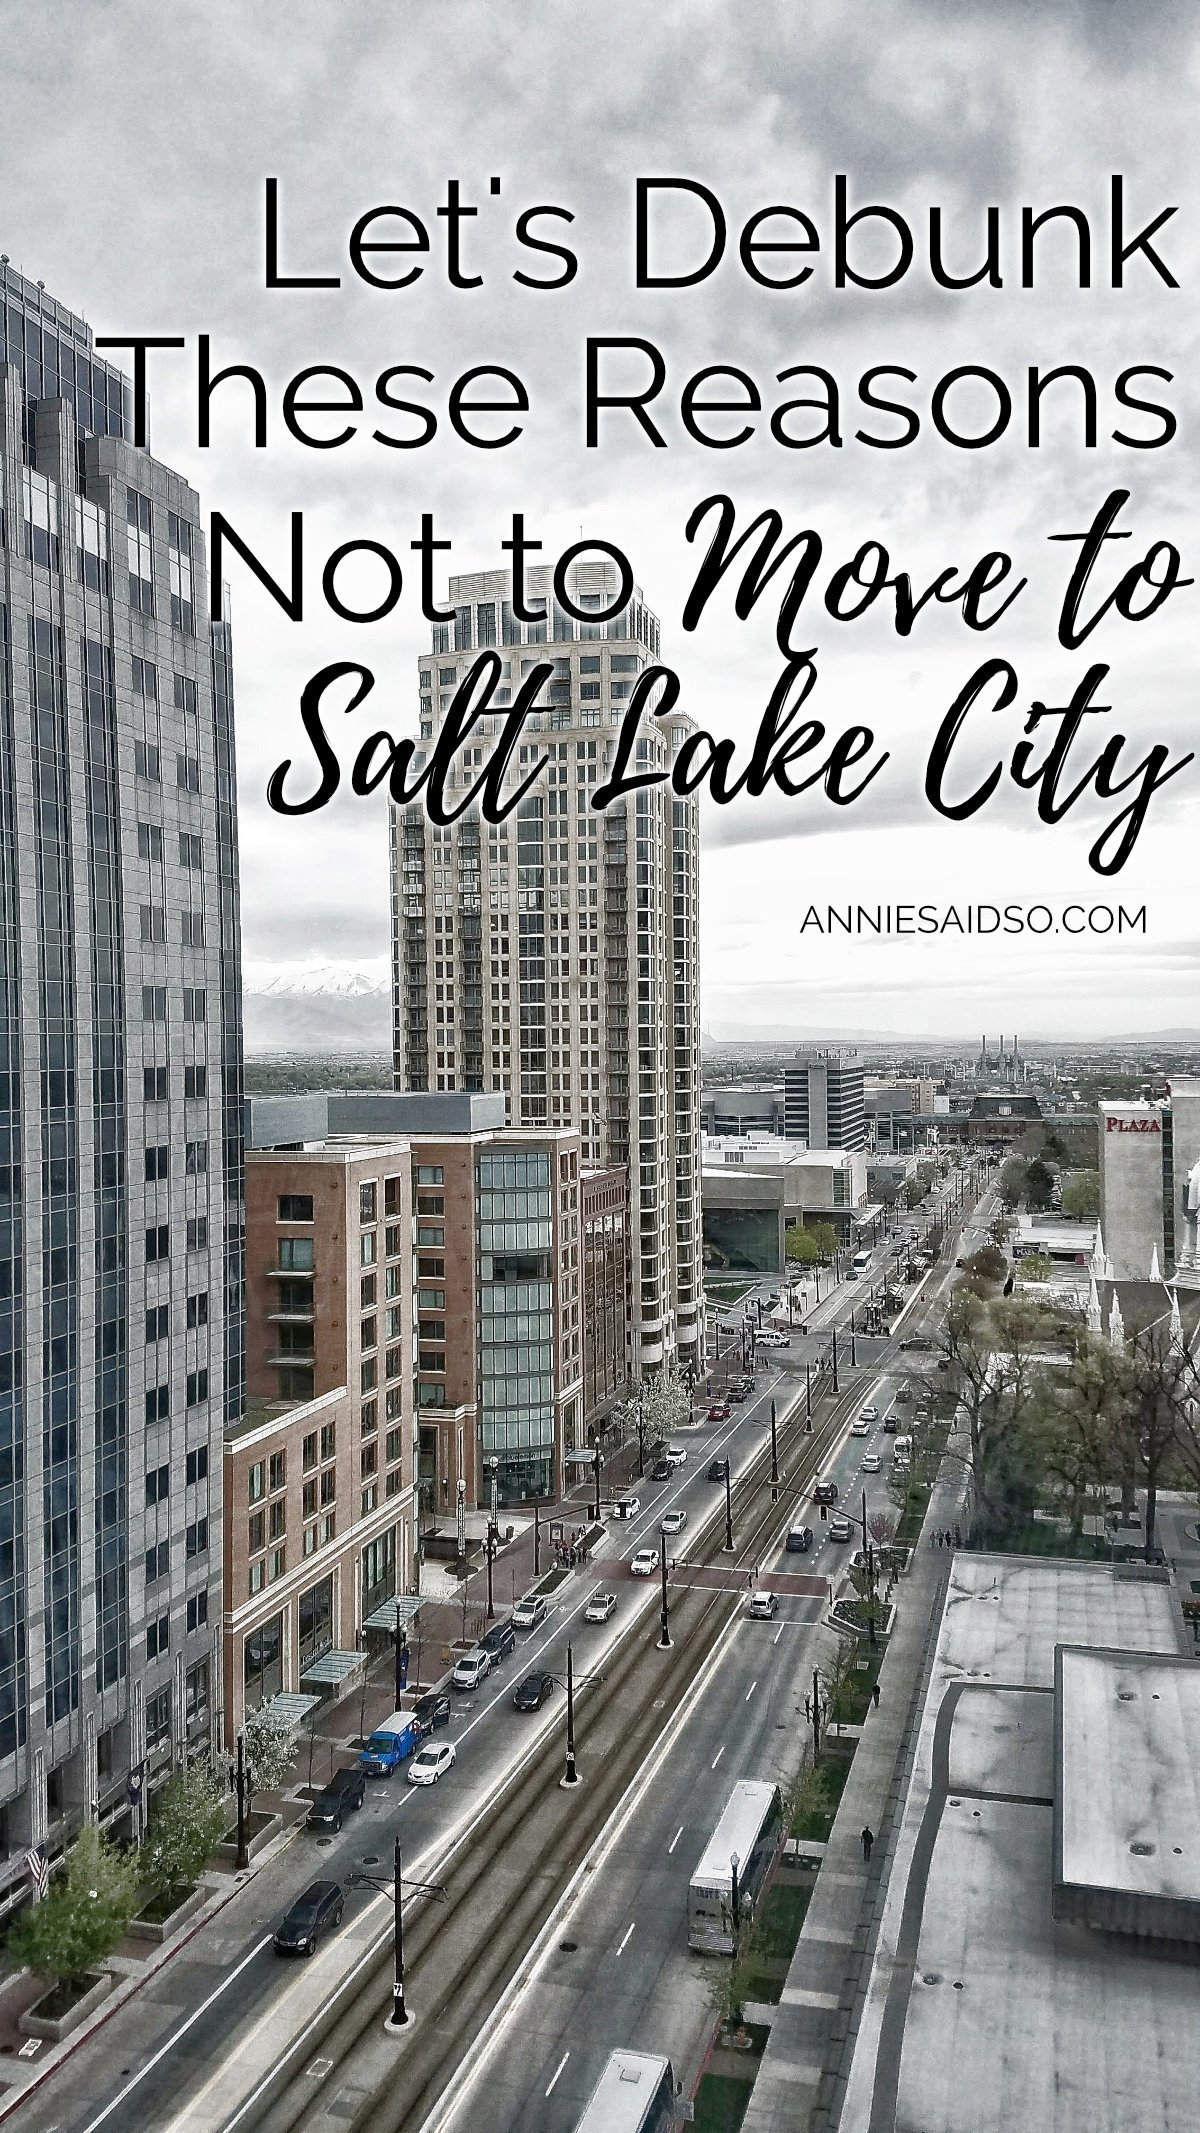 Debunking These Reasons Not to Move to Salt Lake City